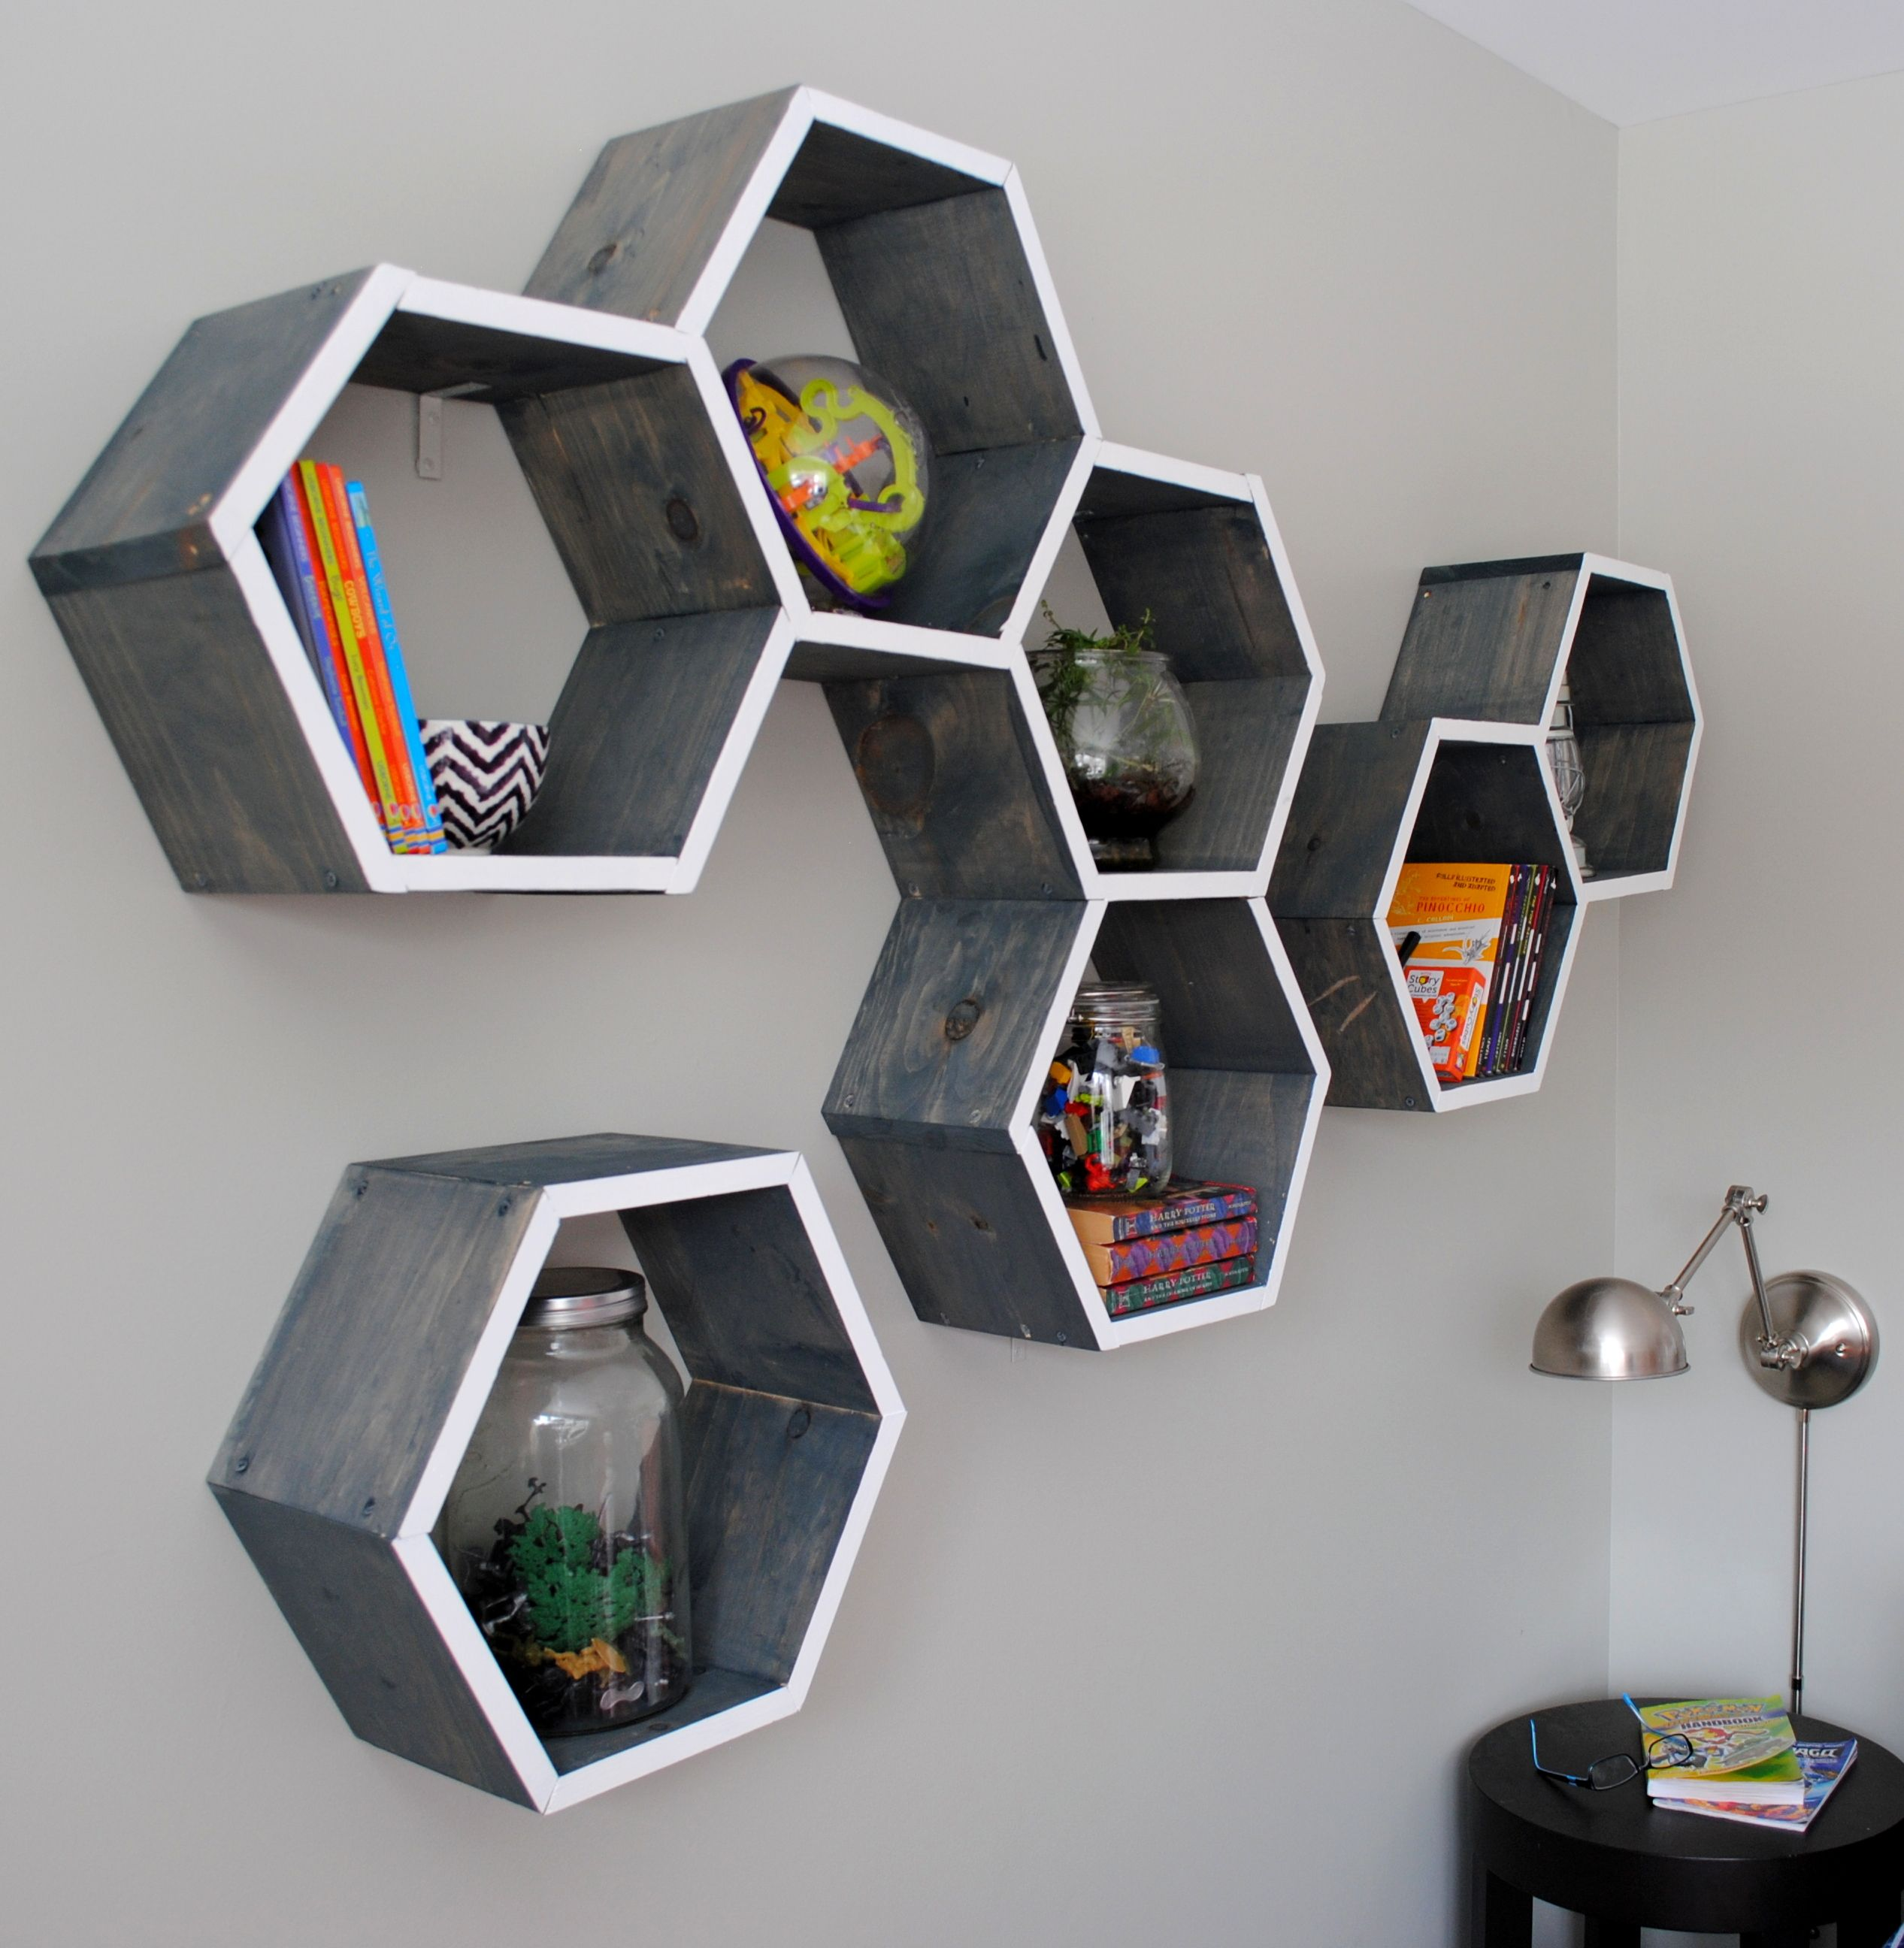 of shelves marvelous on cozy decoration pinterest set best idea modern hexagon bookshelf honeycomb ideas chic